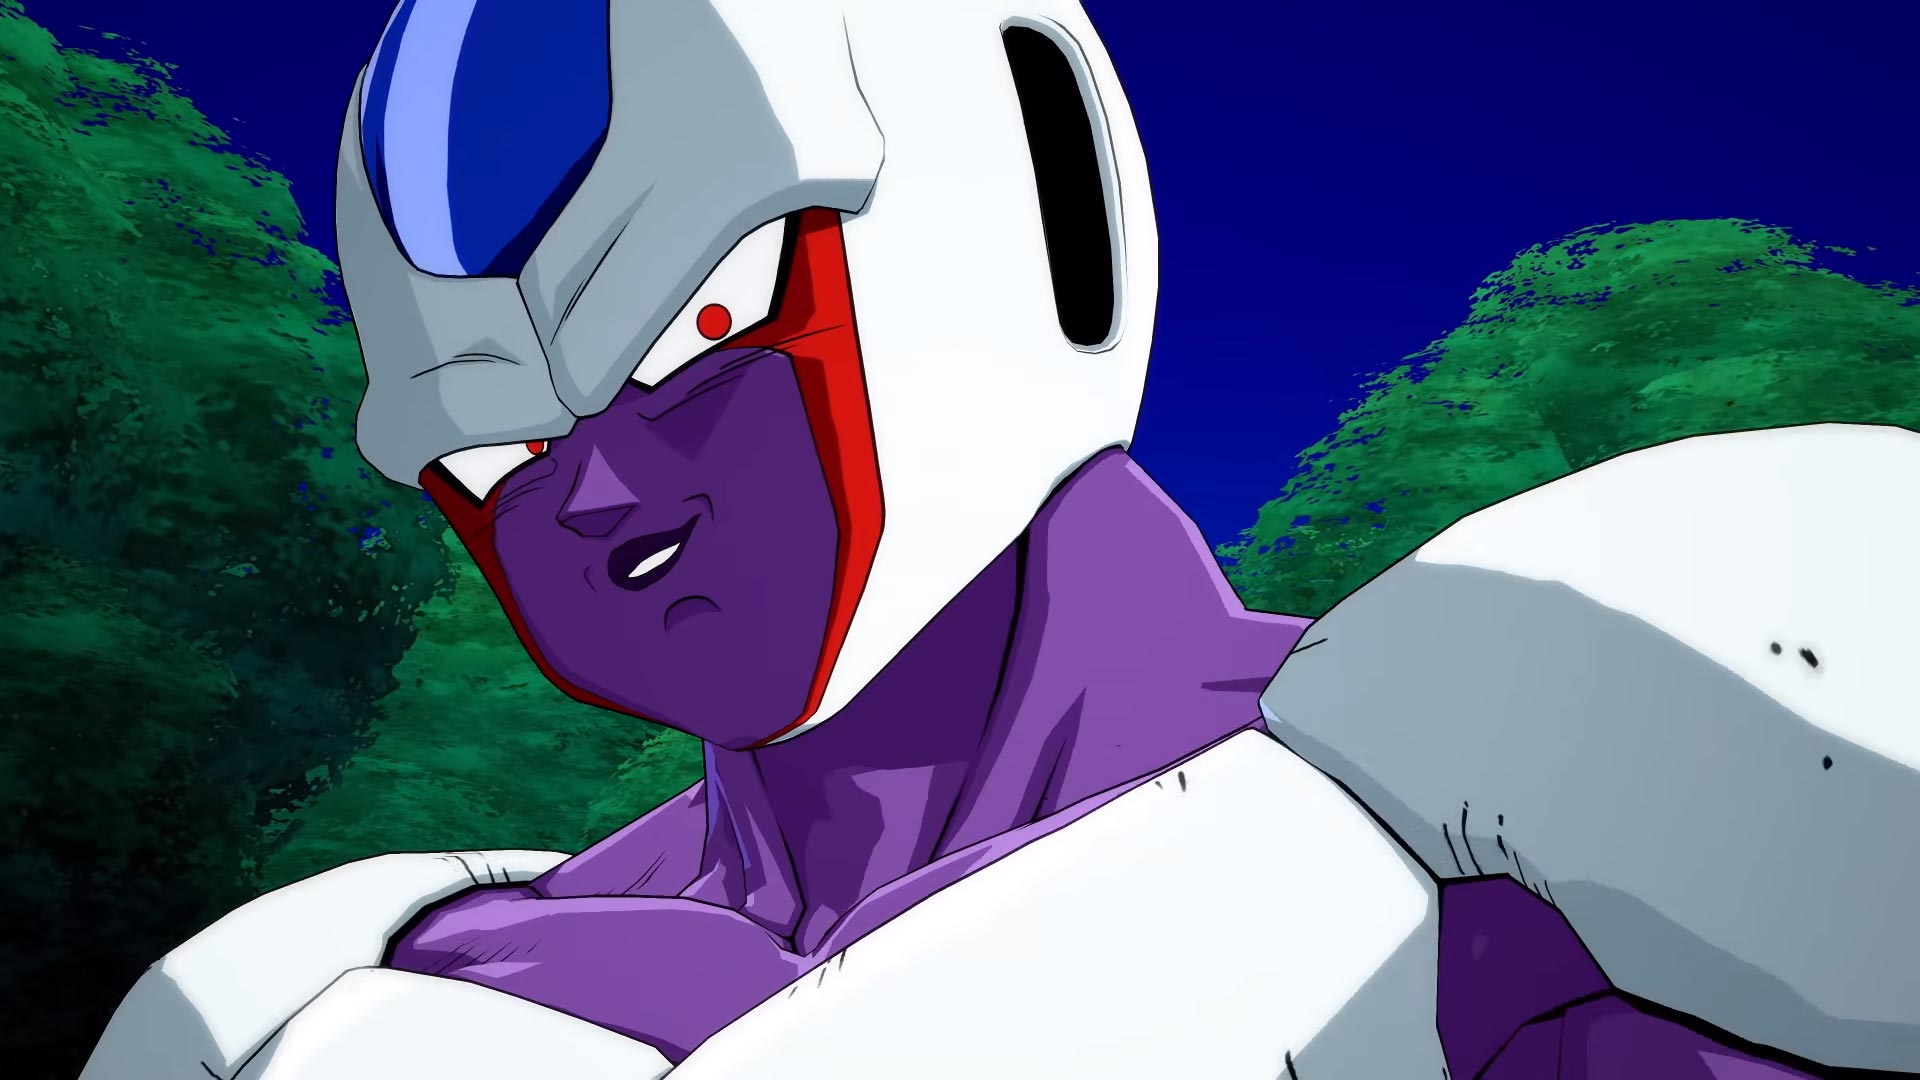 Cooler in Dragon Ball FighterZ 2 out of 9 image gallery